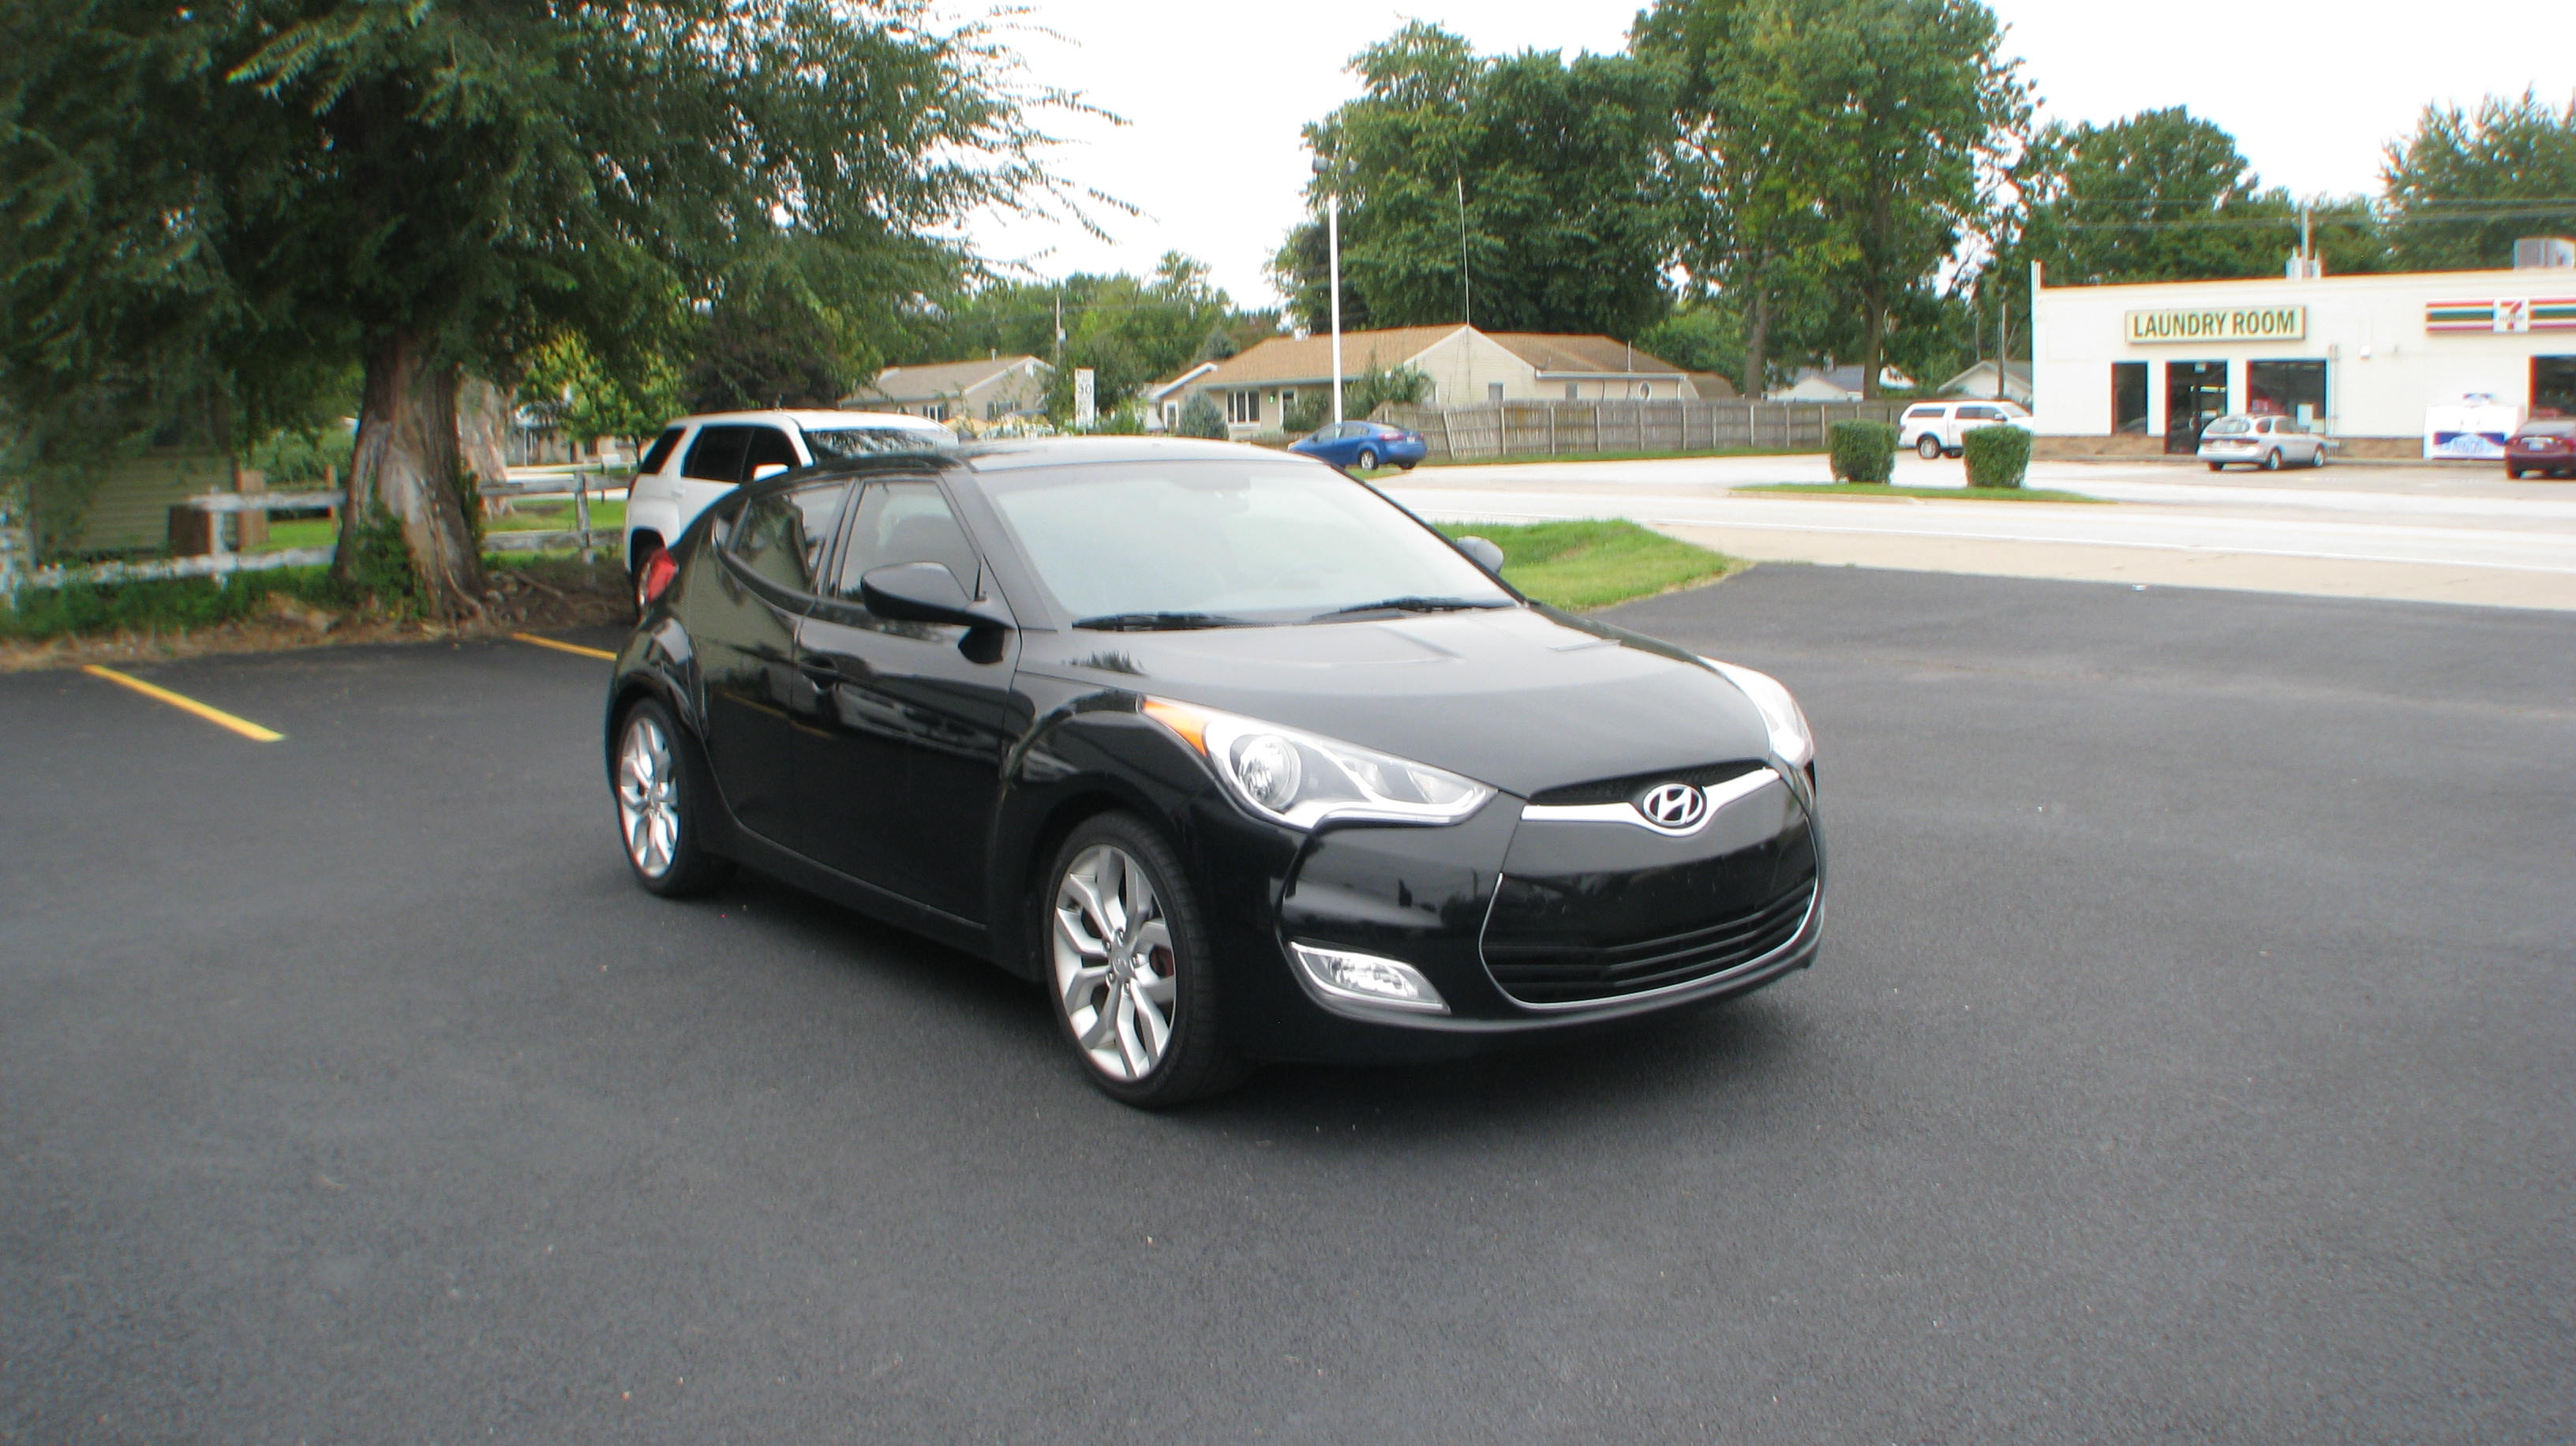 Pre-Owned 2013 Hyundai Veloster 3d Coupe RE:MIX 6spd